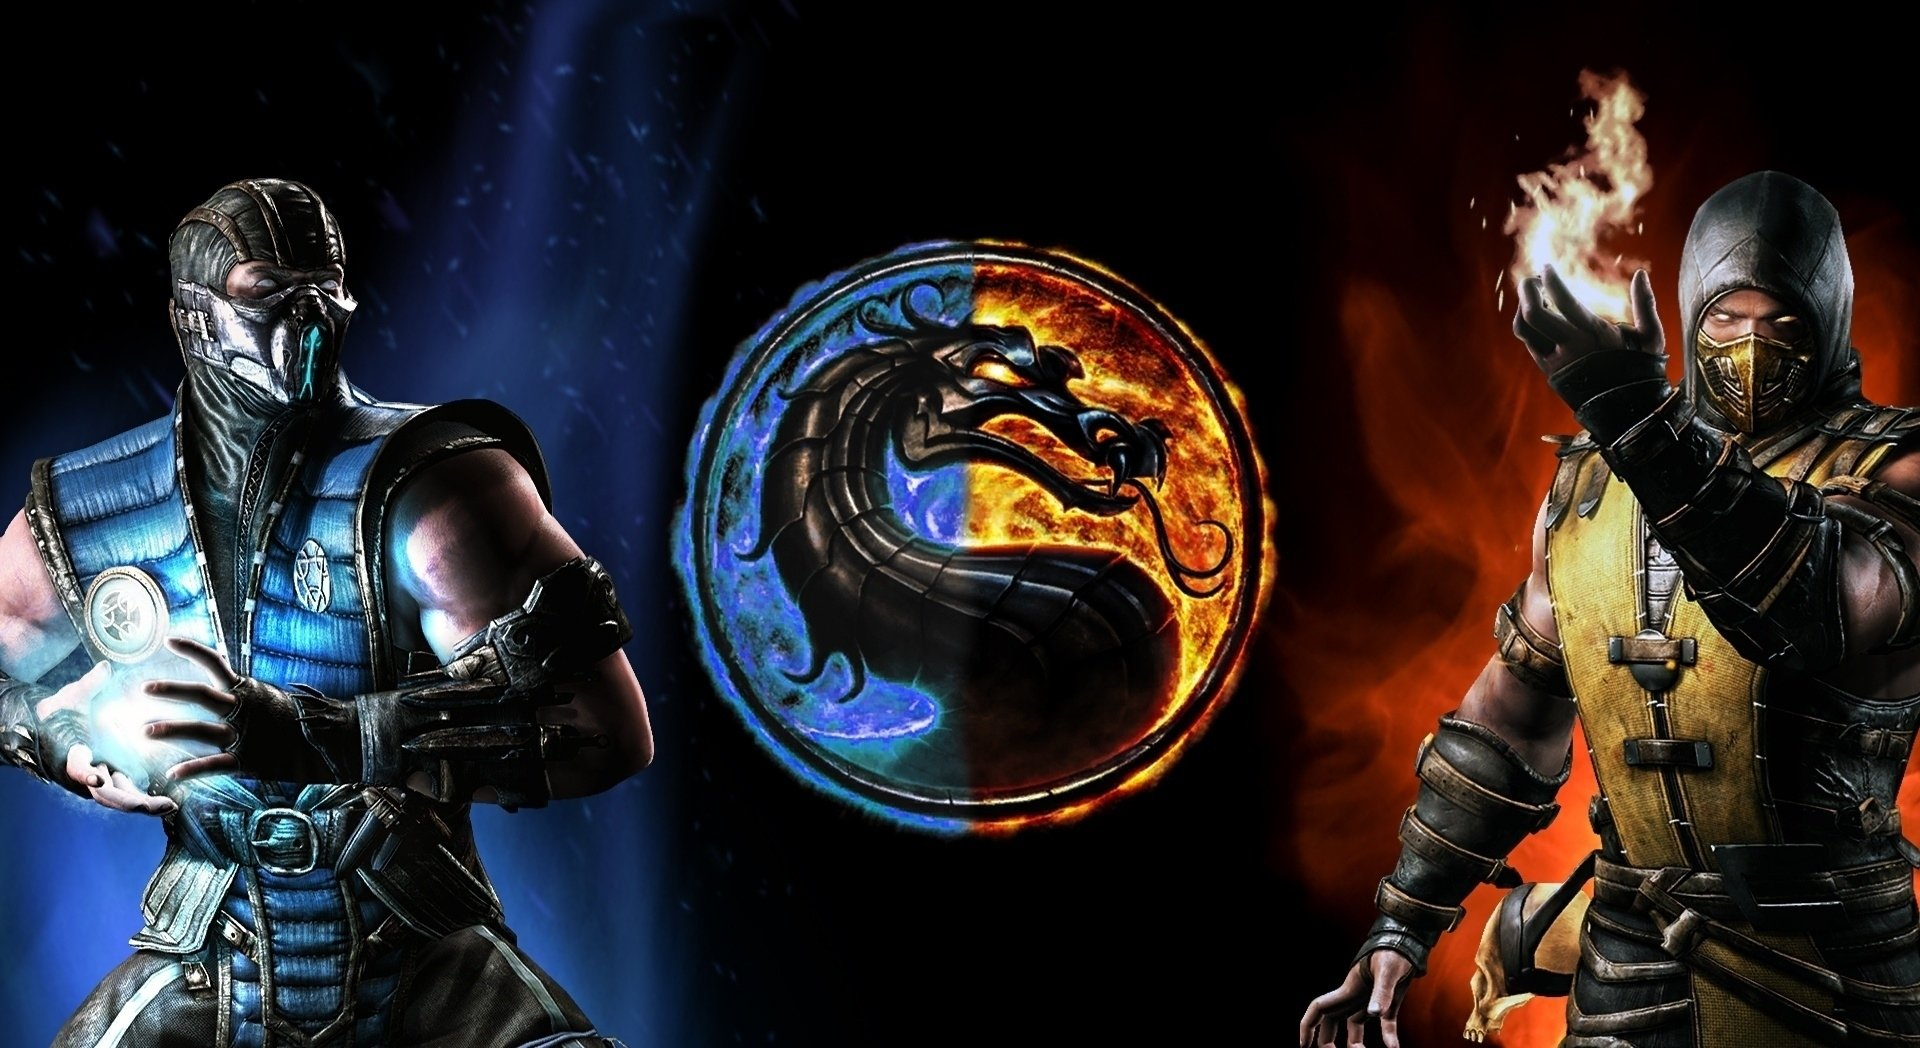 Video Game - Mortal Kombat  Scorpion (Mortal Kombat) Dragon Emblem Sub-Zero (Mortal Kombat) Logo Fire Wallpaper